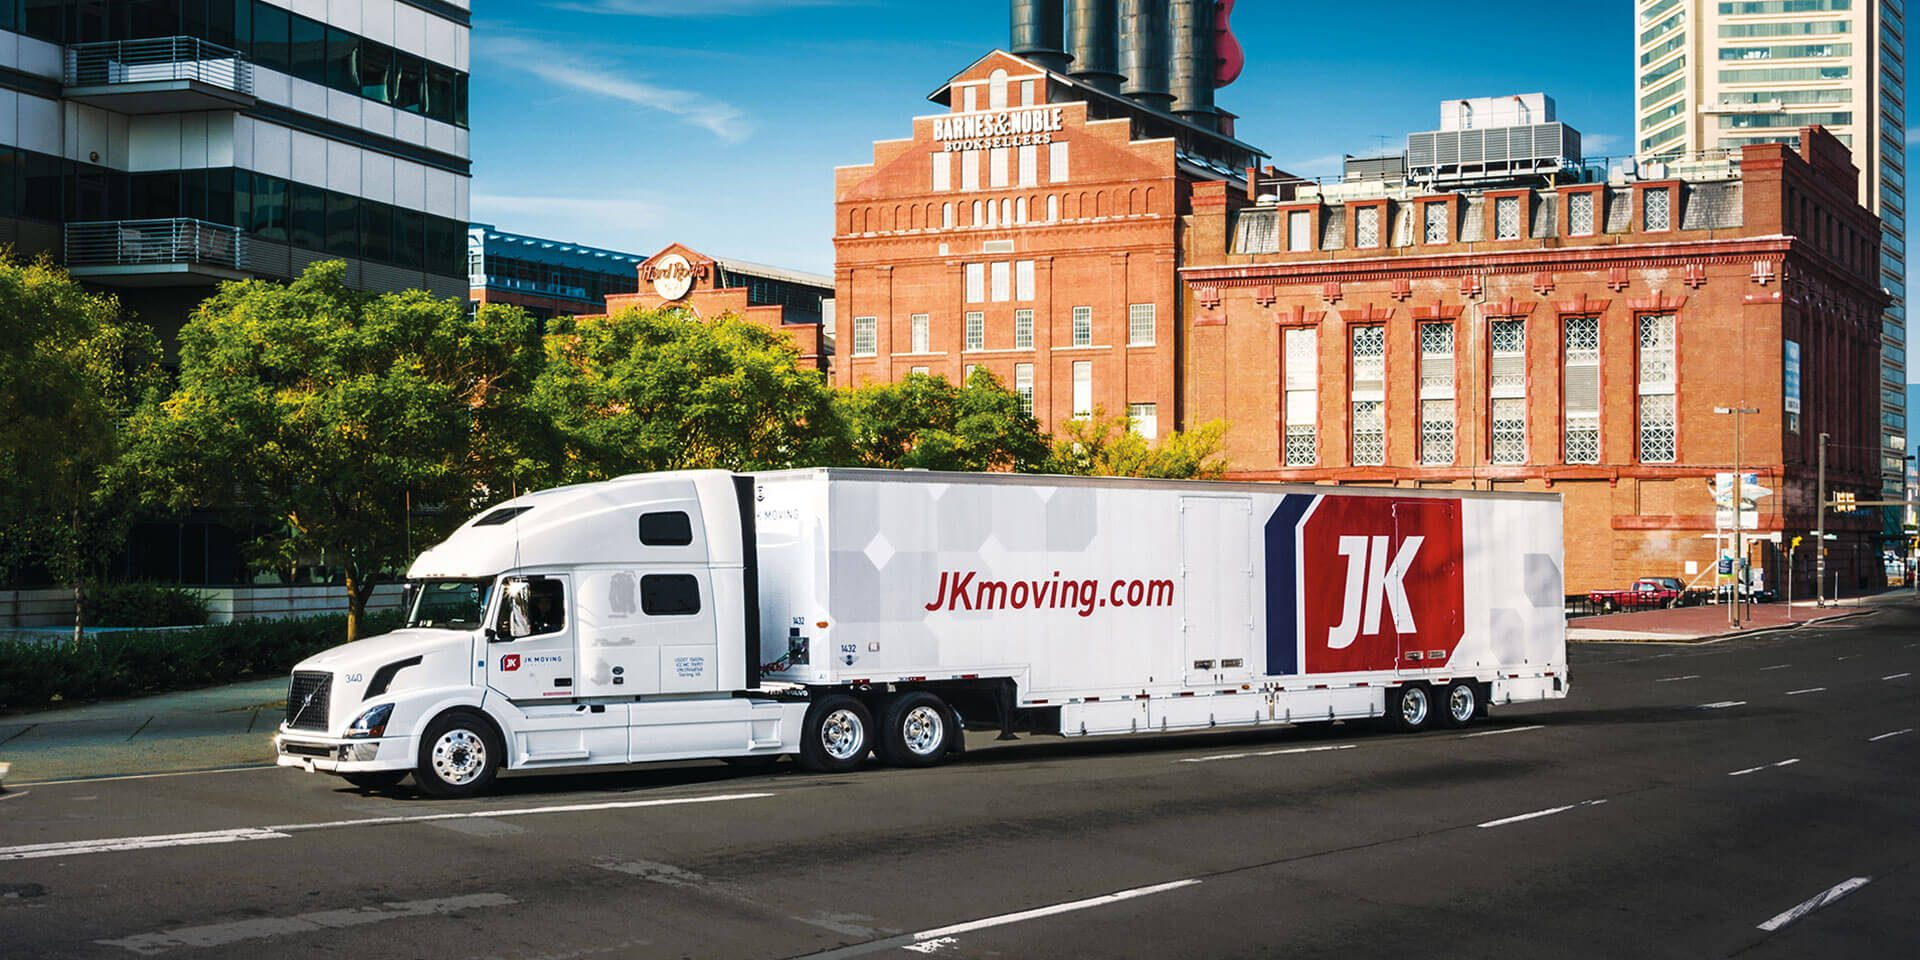 With help from brand strategists at Grafik, the unified designs of the JK trucks are a smart brand decision.